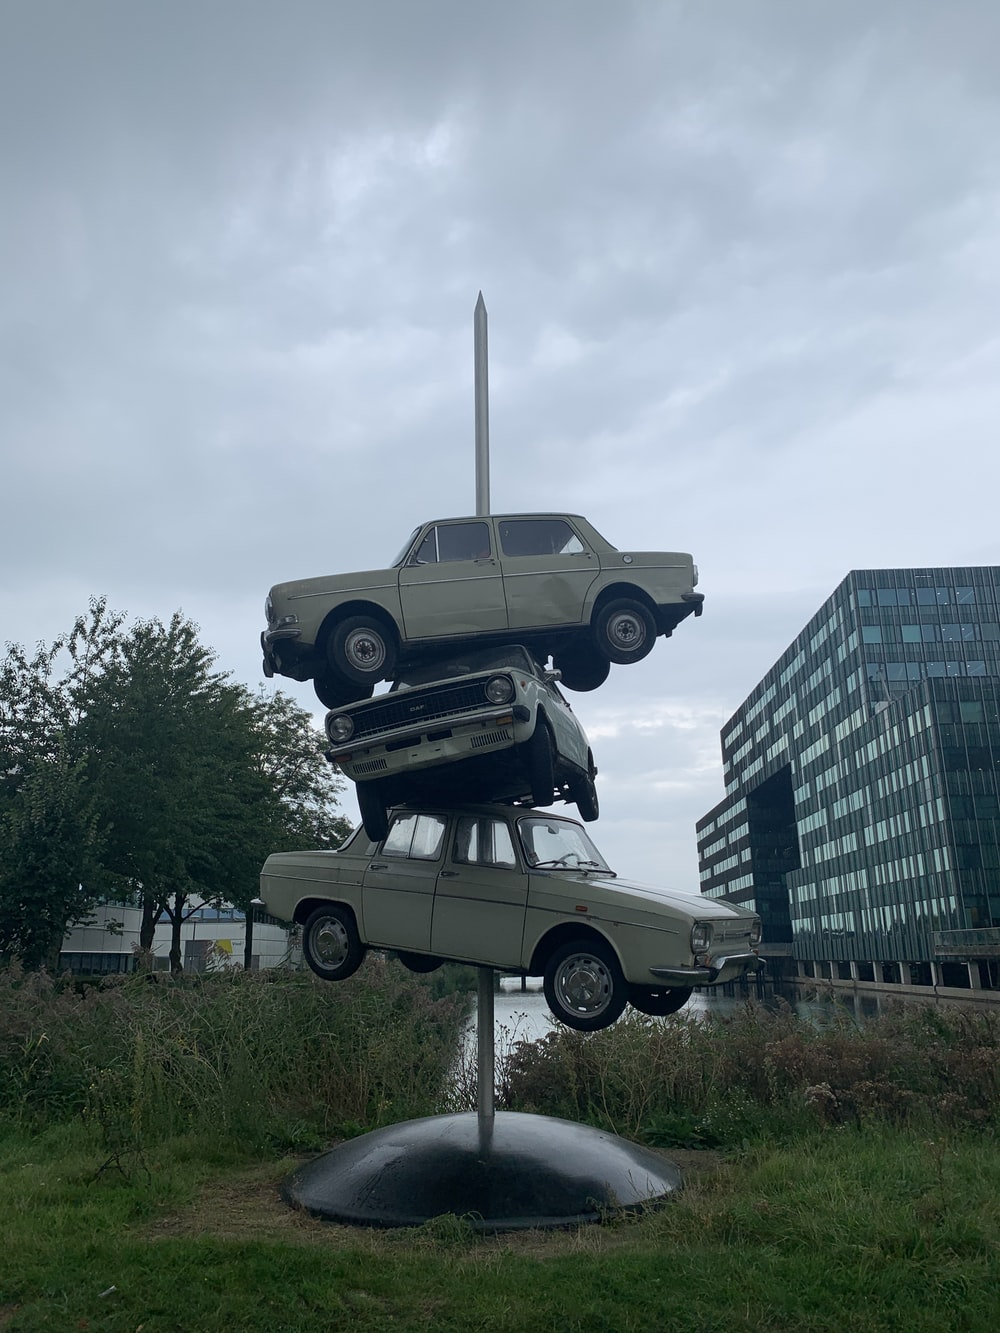 grey and black car statue near high rise building during daytime